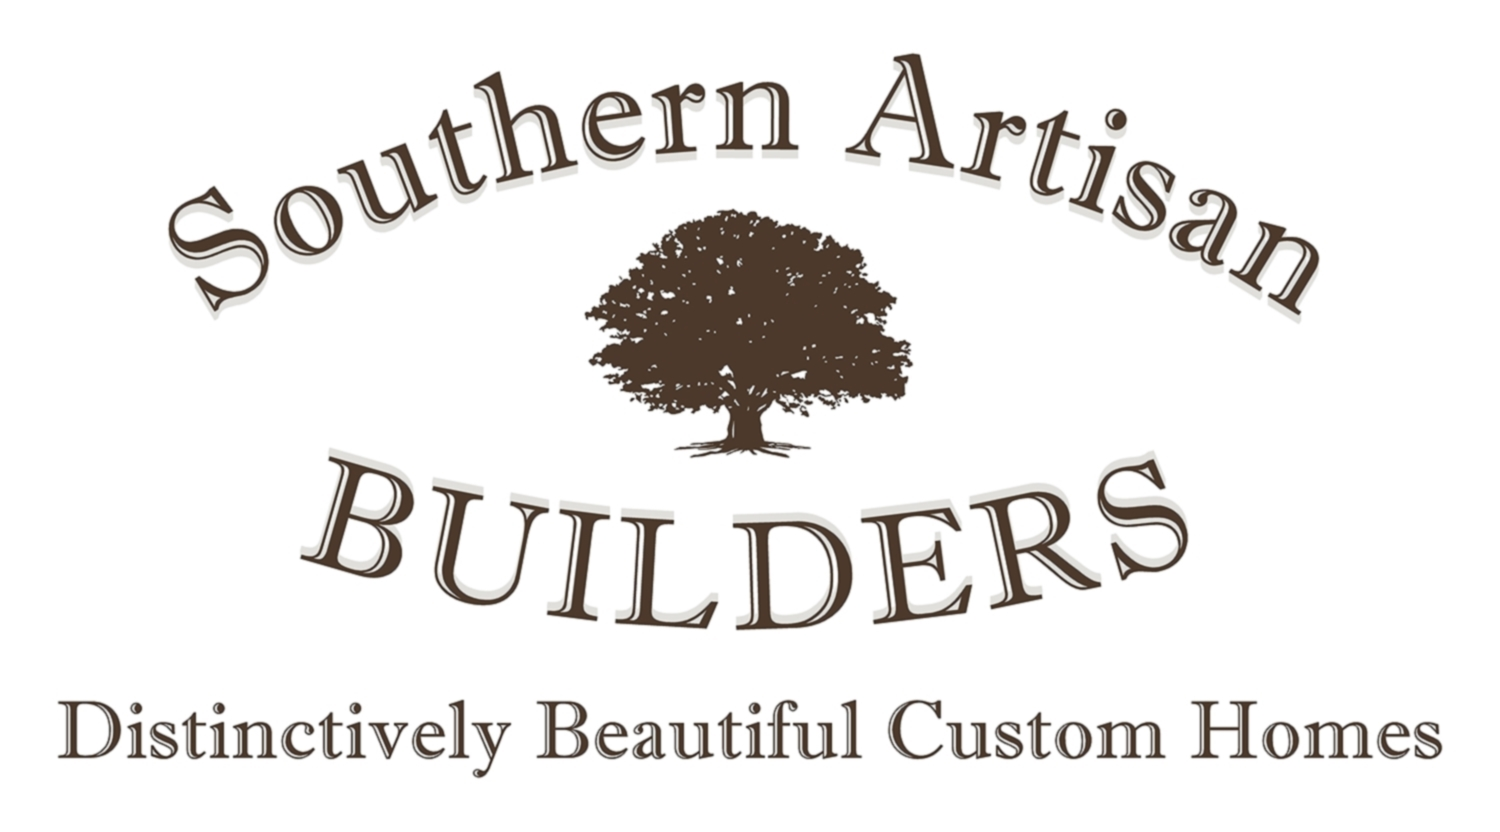 Southern Artisan Builders